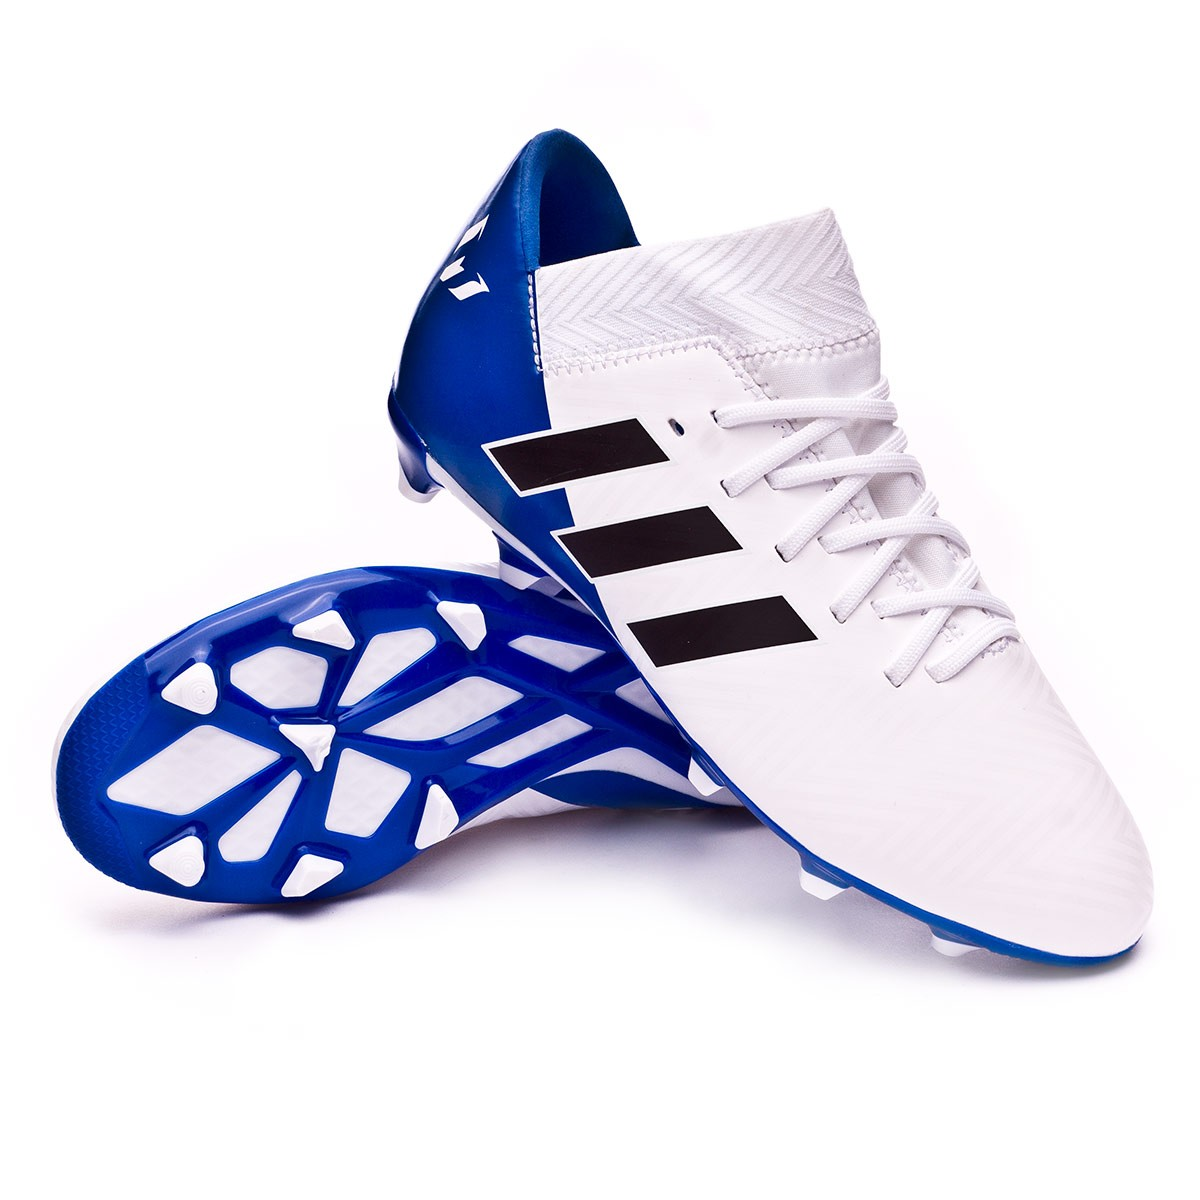 84c7e205e1b4 Football Boots adidas Kids Nemeziz Messi 18.3 FG White-Core black ...